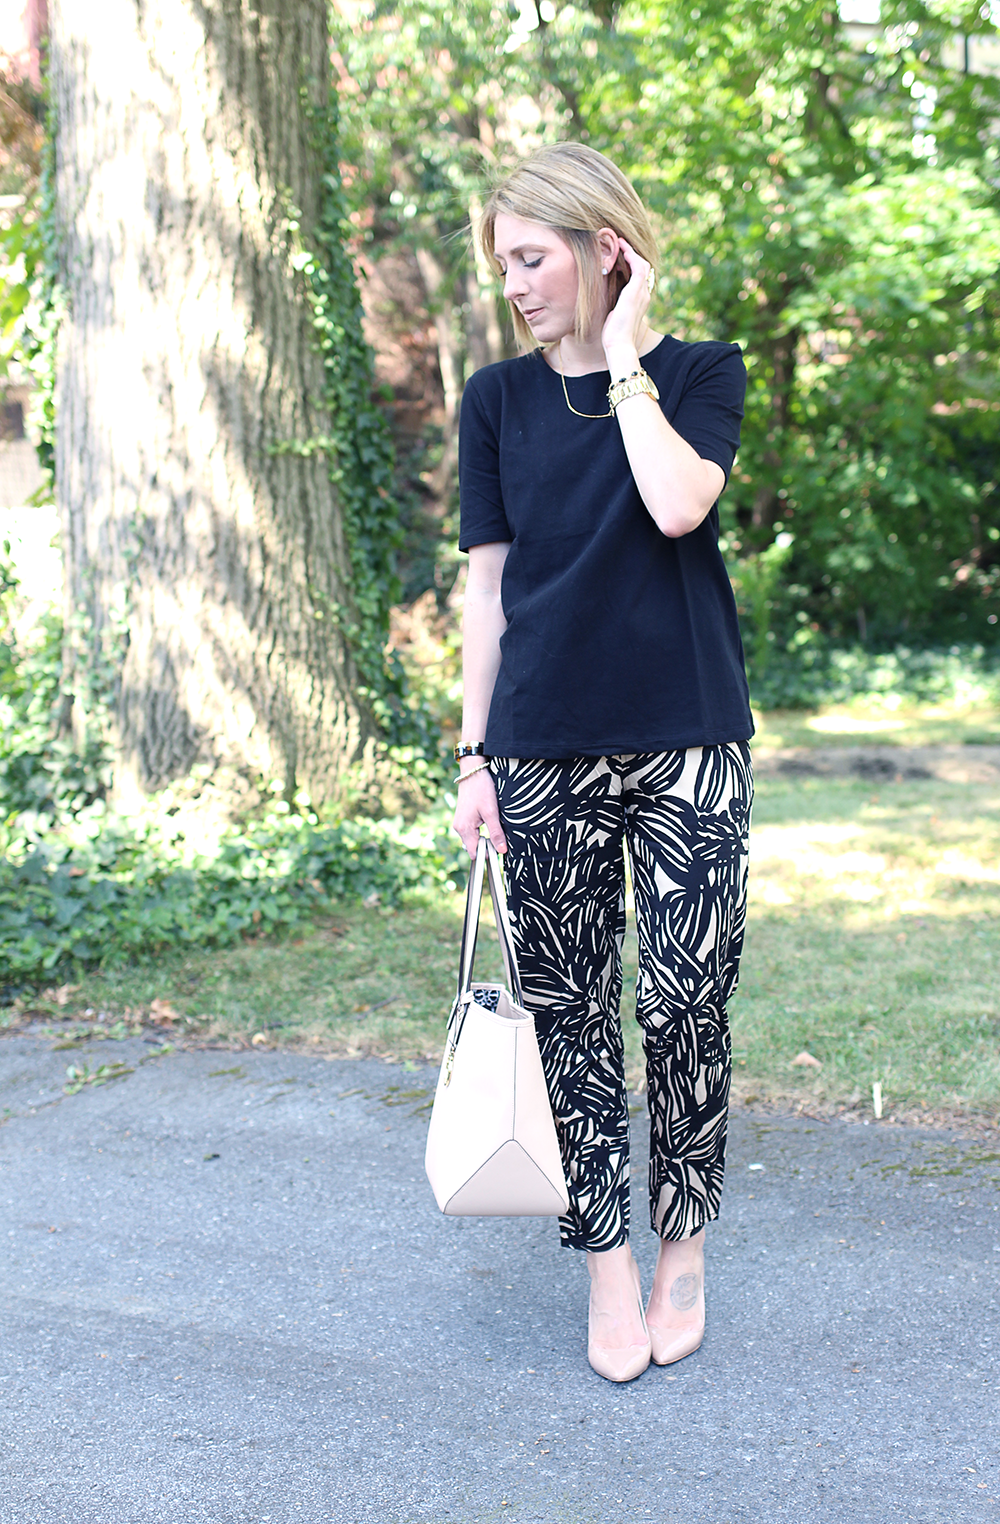 Classic Black and Beige Outfit, Comfy Jogger Pants for Work